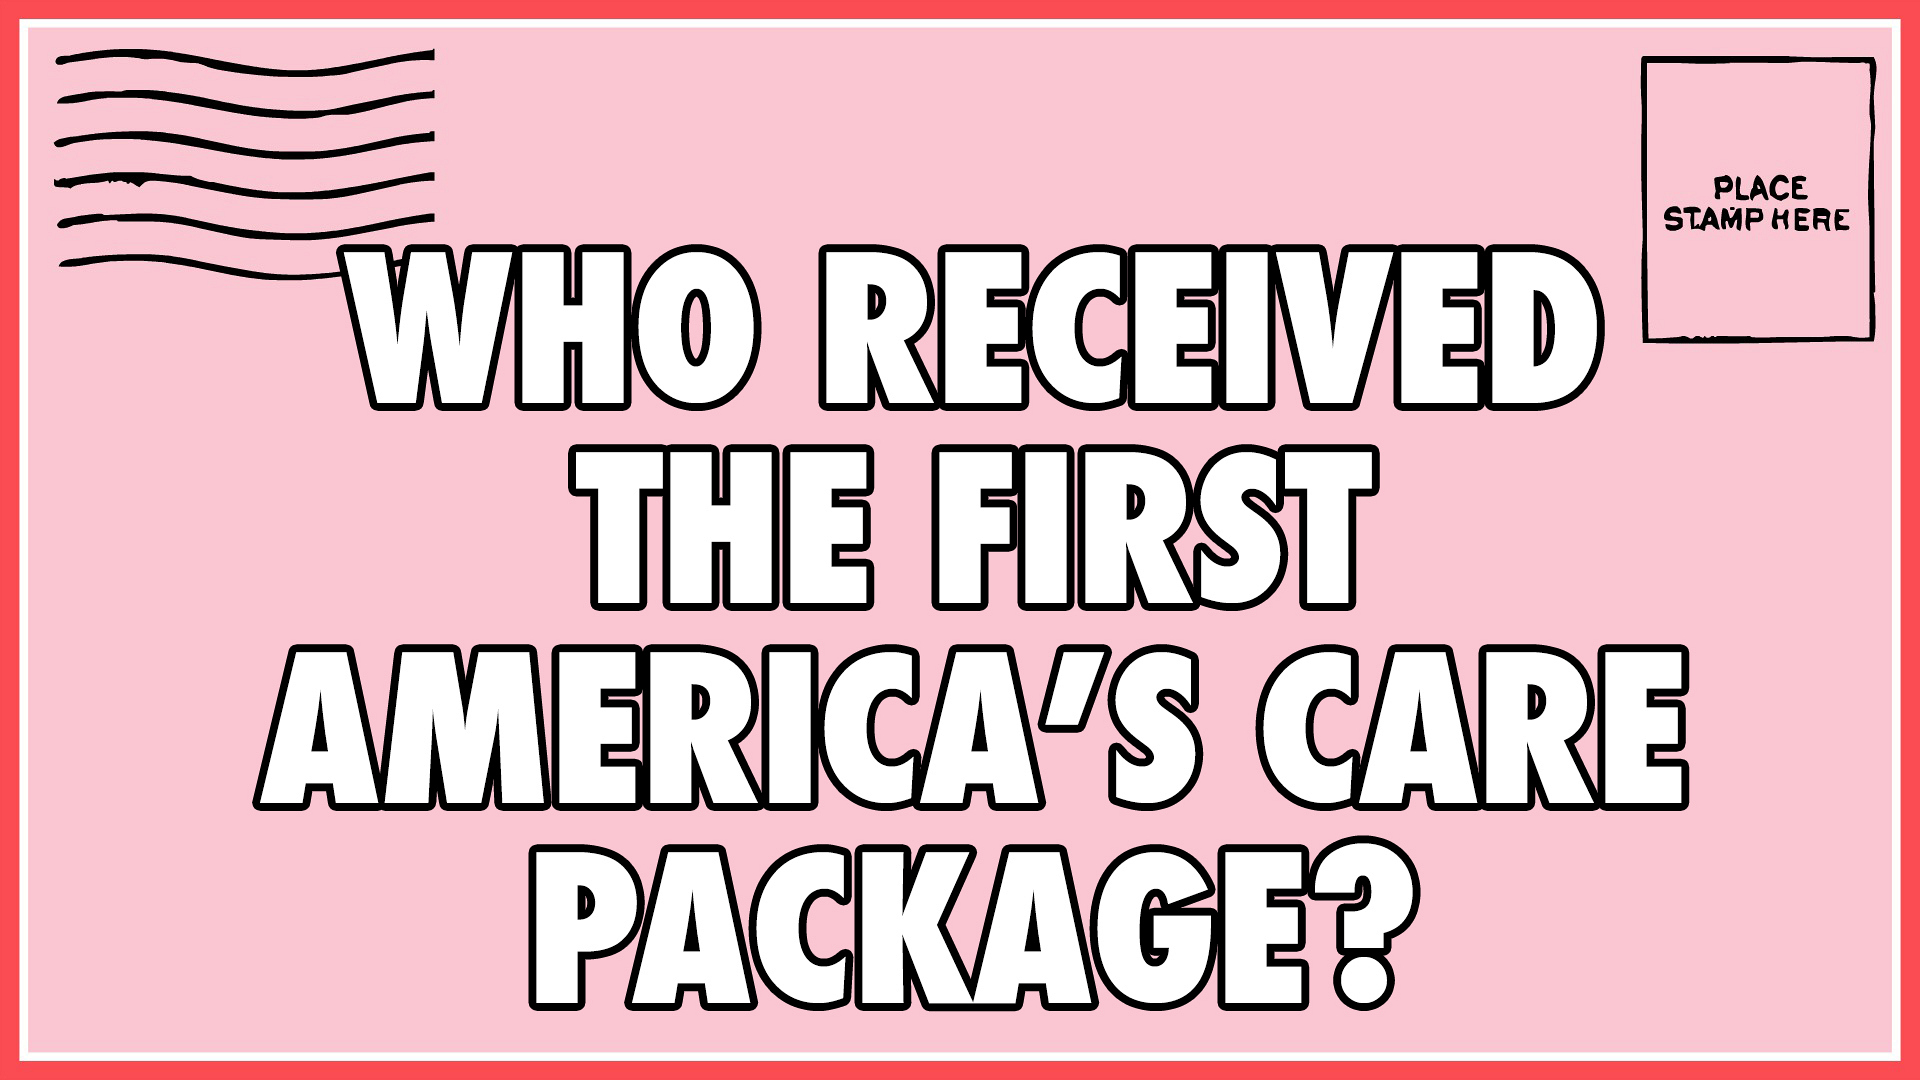 Who received the first America's Care Package?